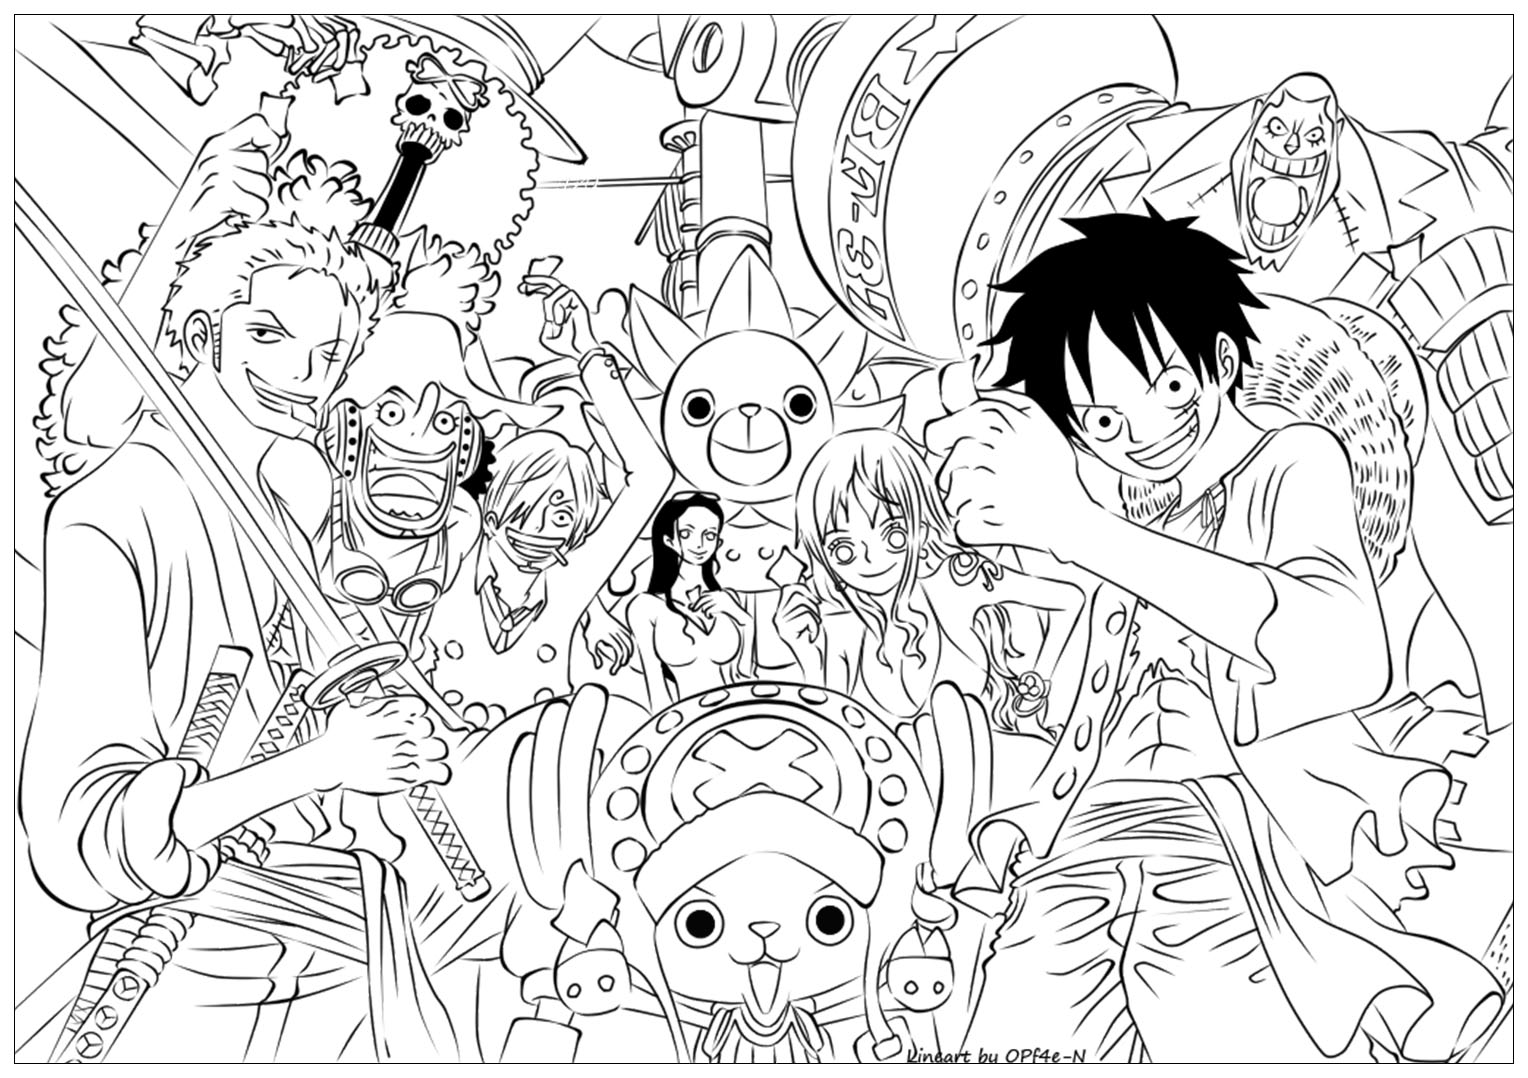 Luffy in One Piece 3